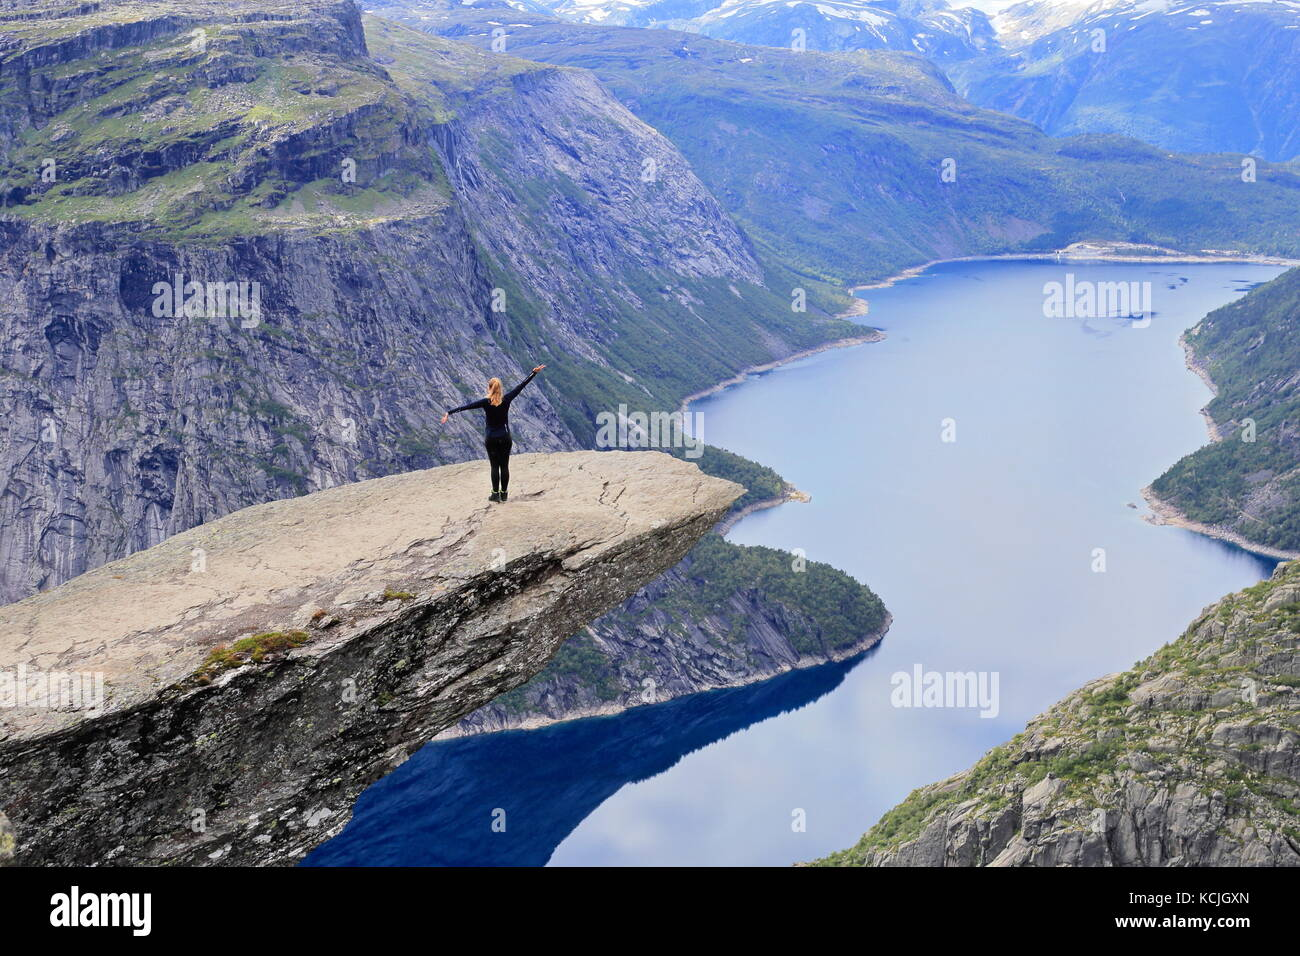 Woman Hiker posing and enjoying view from Trolltunga rock formation in Norway - Stock Image